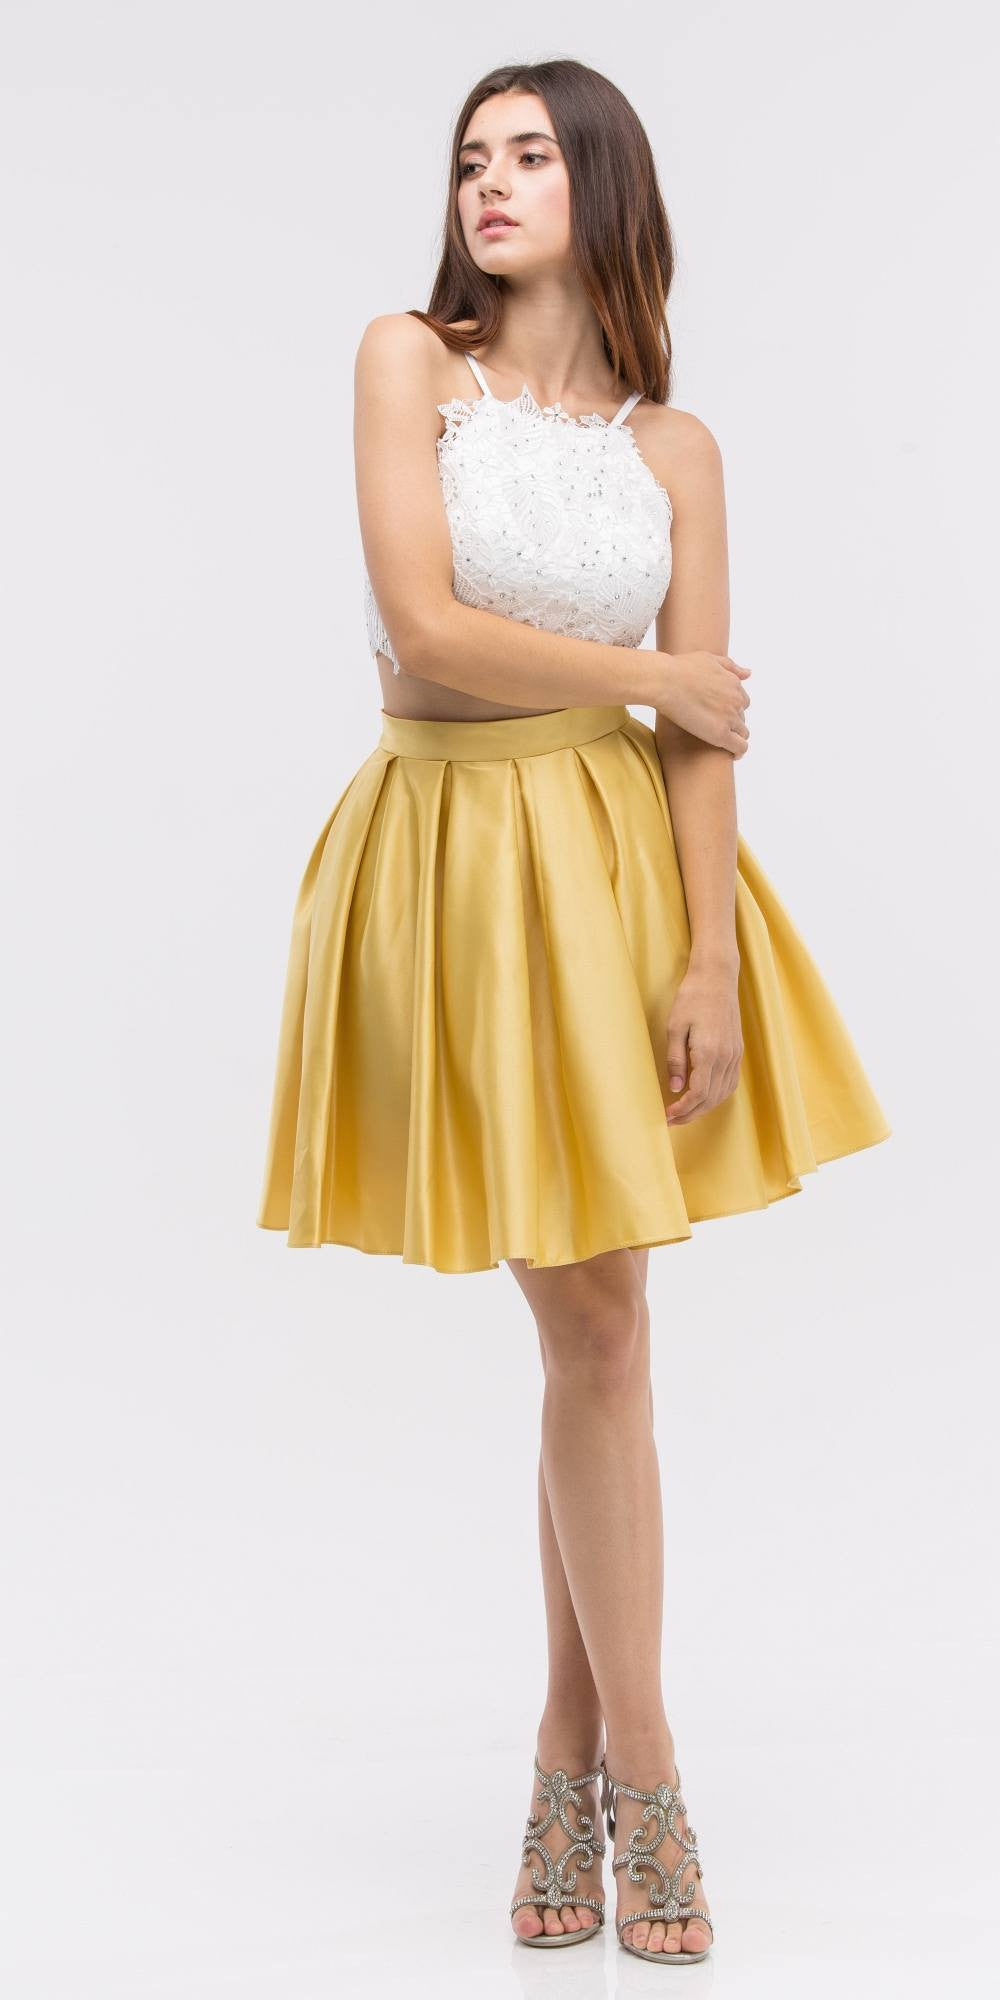 0bc489f7066 ... Lace Crop Top Pleated Skirt Yellow/White Two-Piece Homecoming Dress